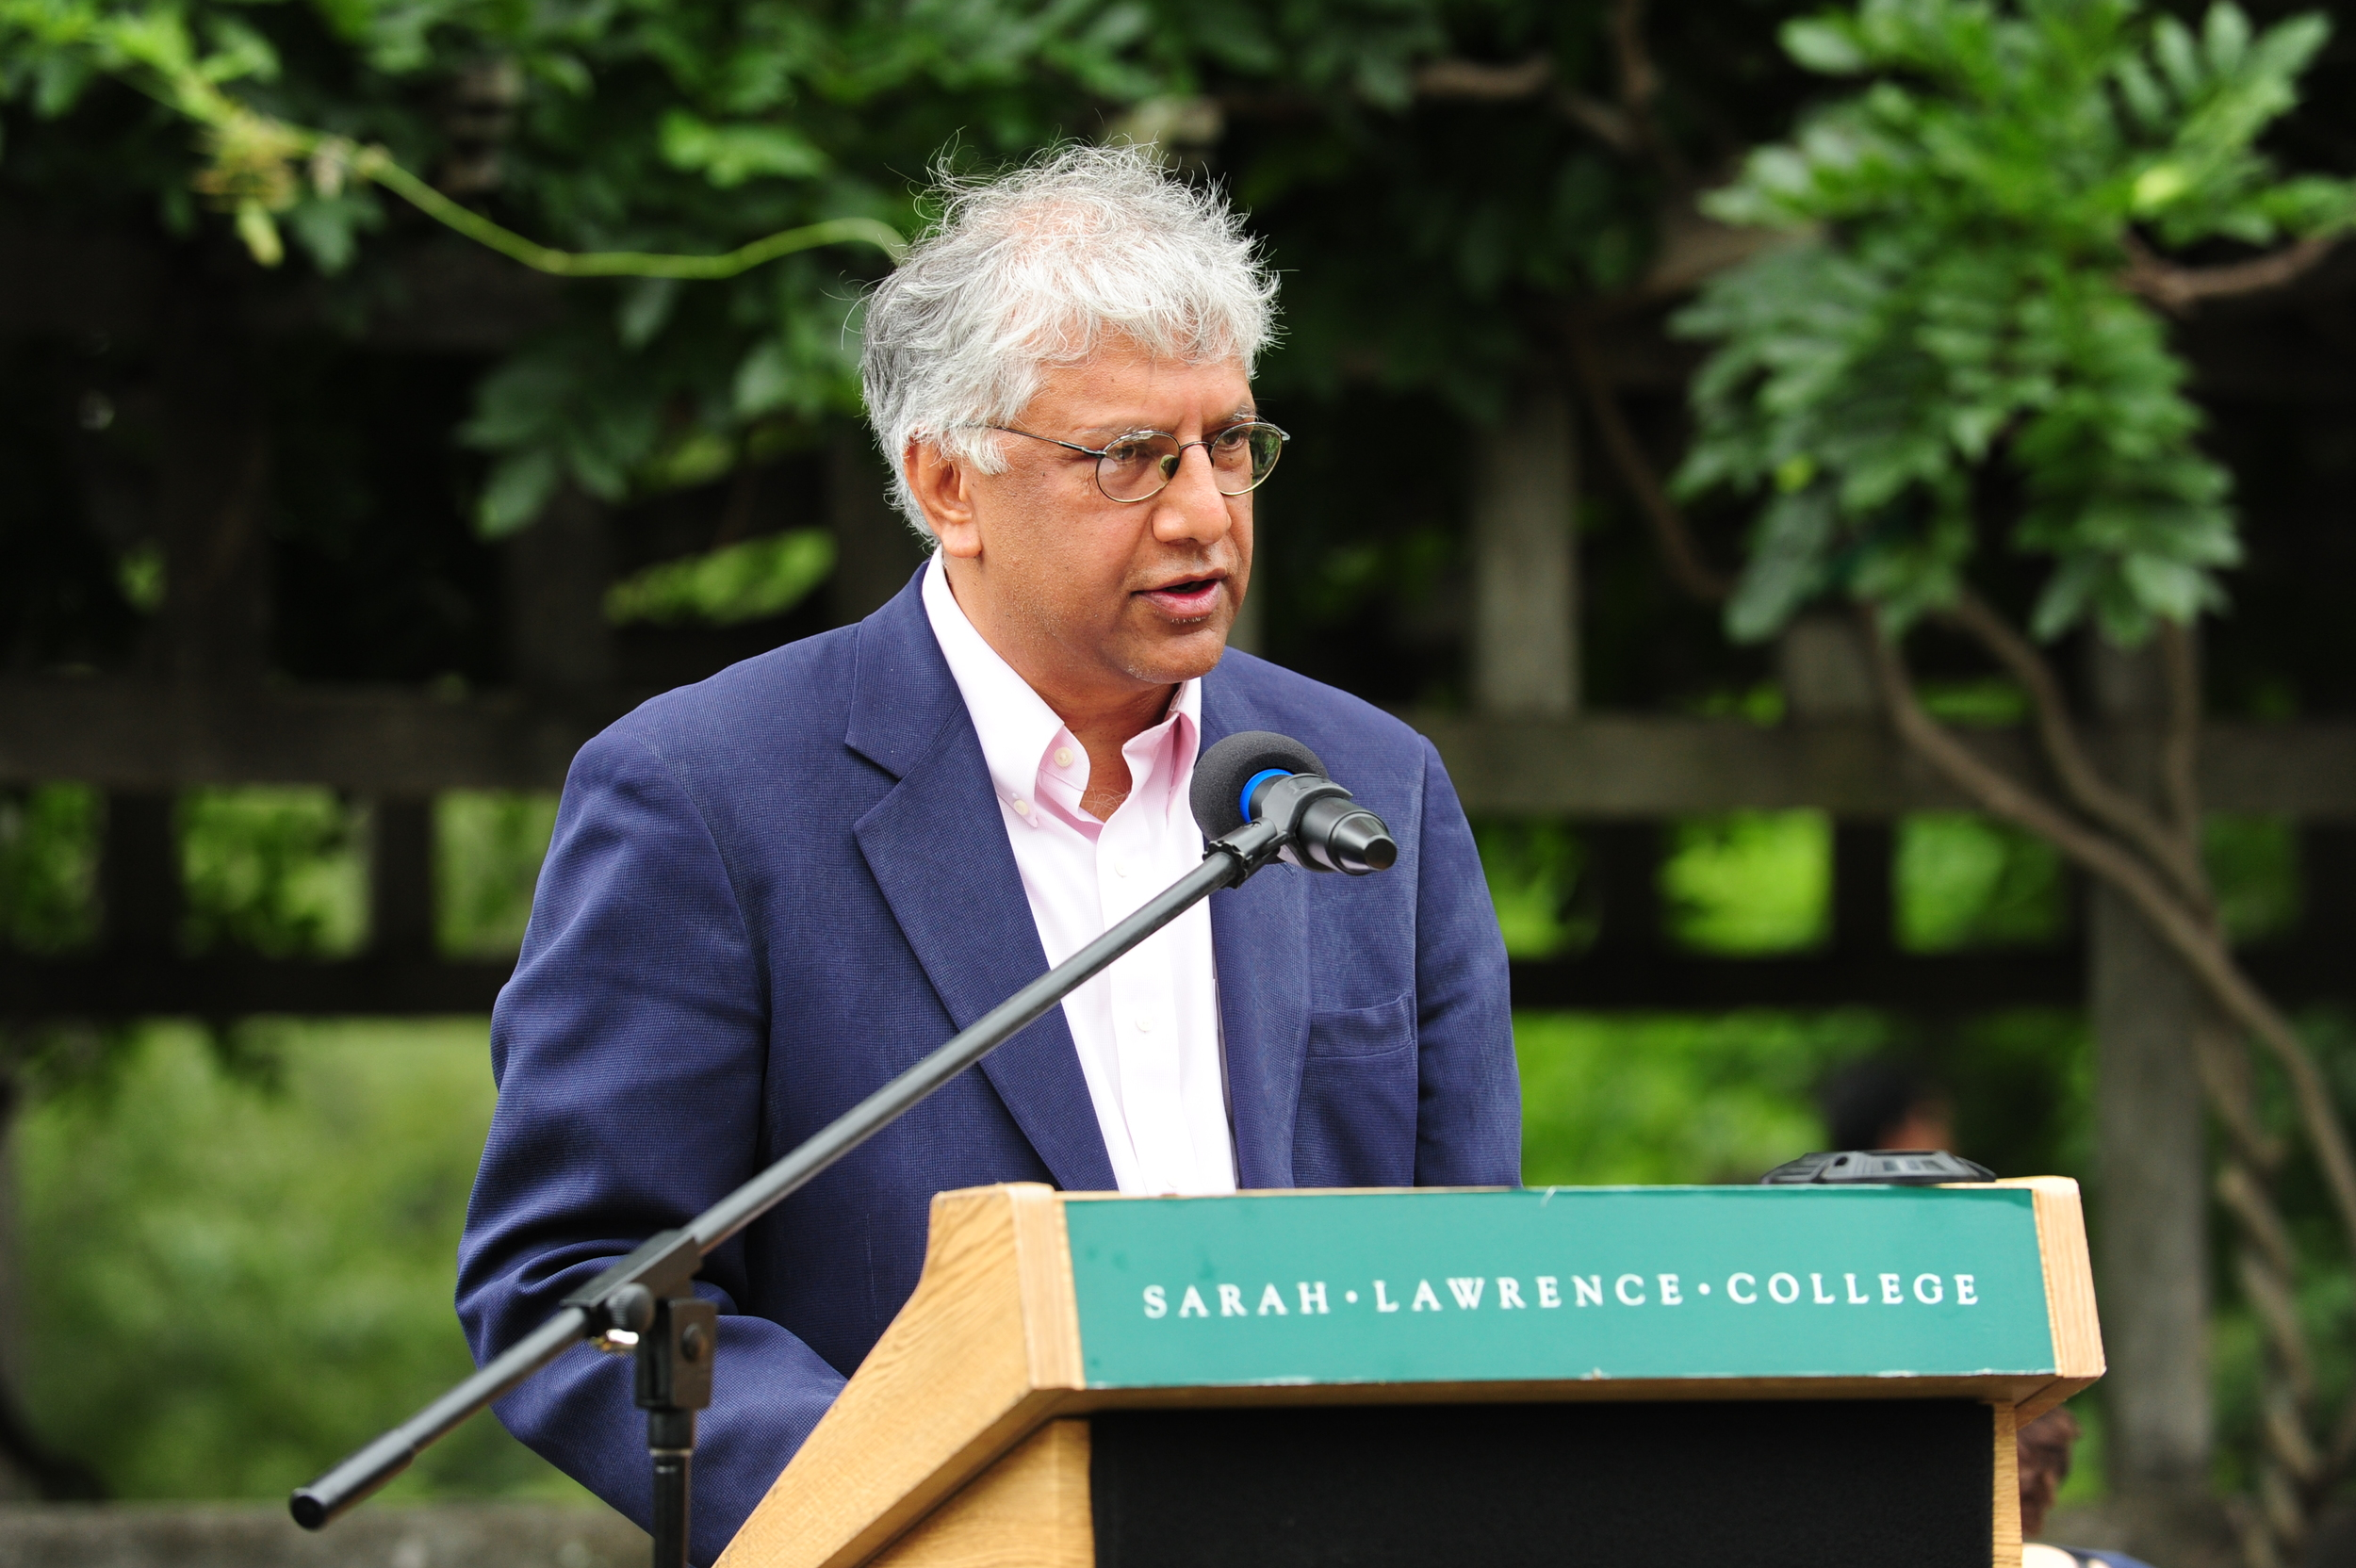 Faculty member Vijay Seshadri provided advice on time management in his speech on Tuesday. Photo by Chris Taggart.